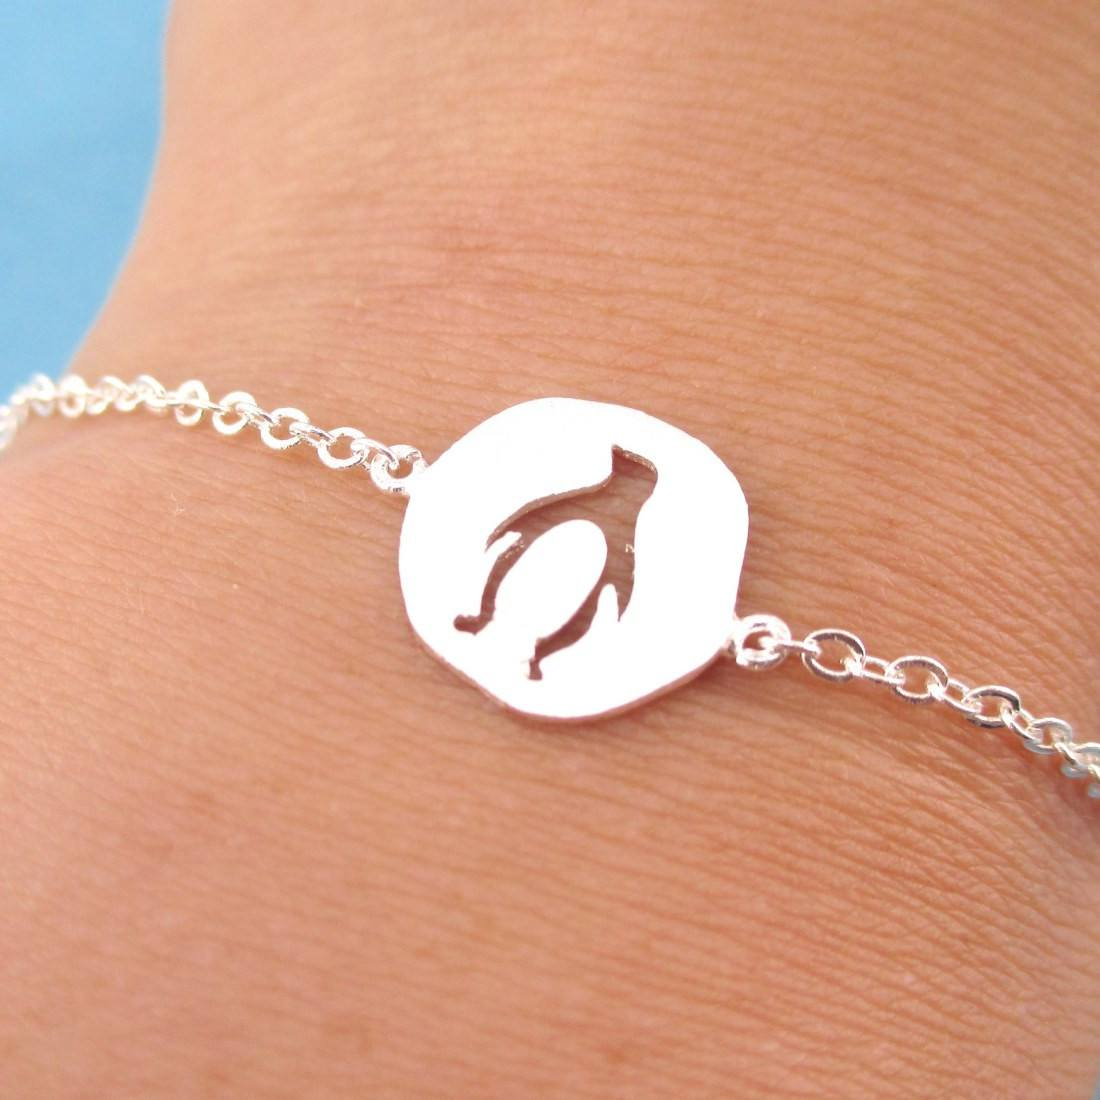 Charm Bracelet with Penguin Silhouette Cut Out in Silver | DOTOLY